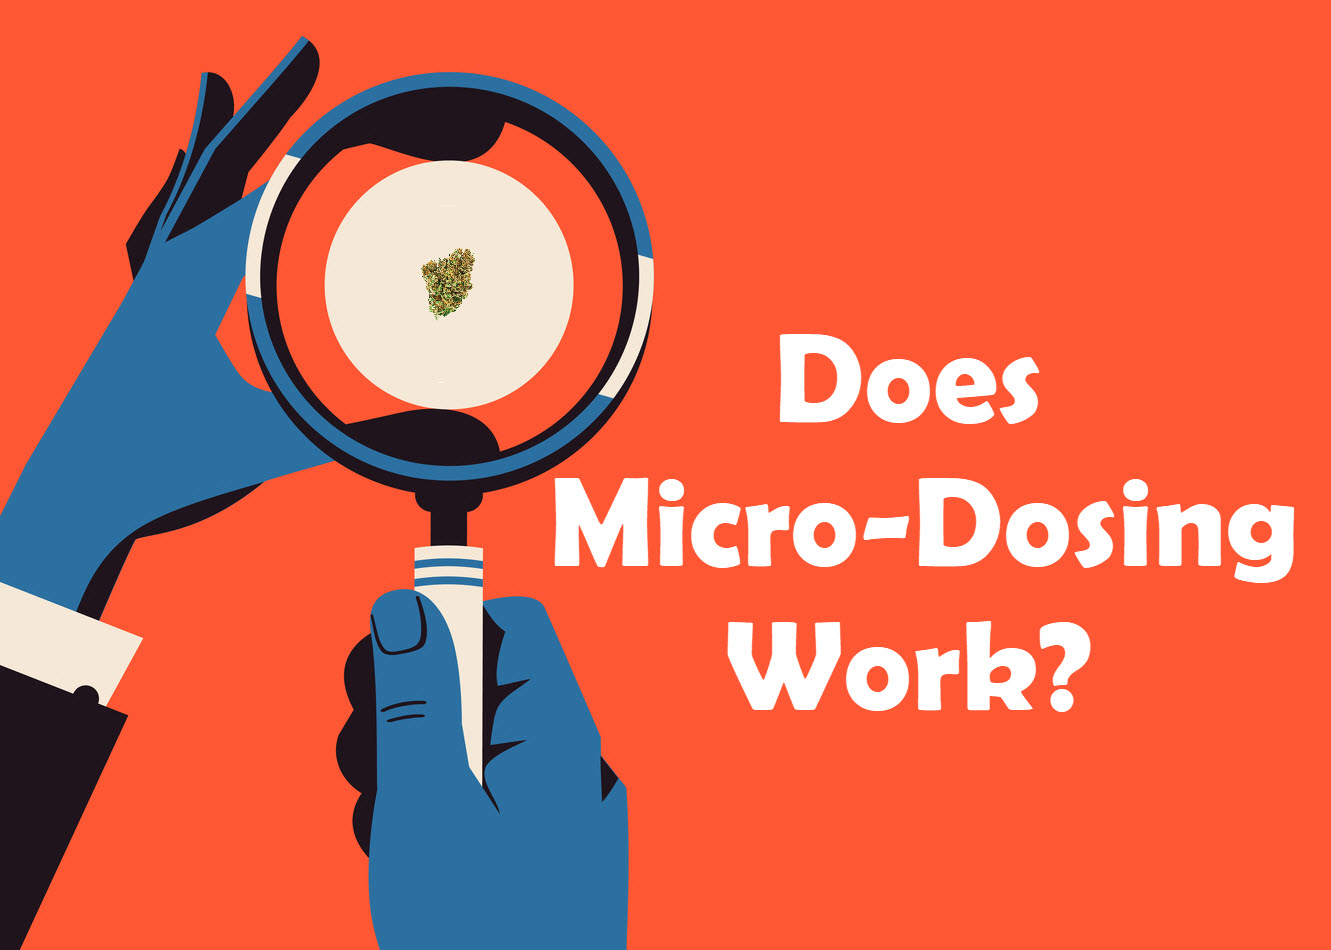 Does Micro-Dosing Work?